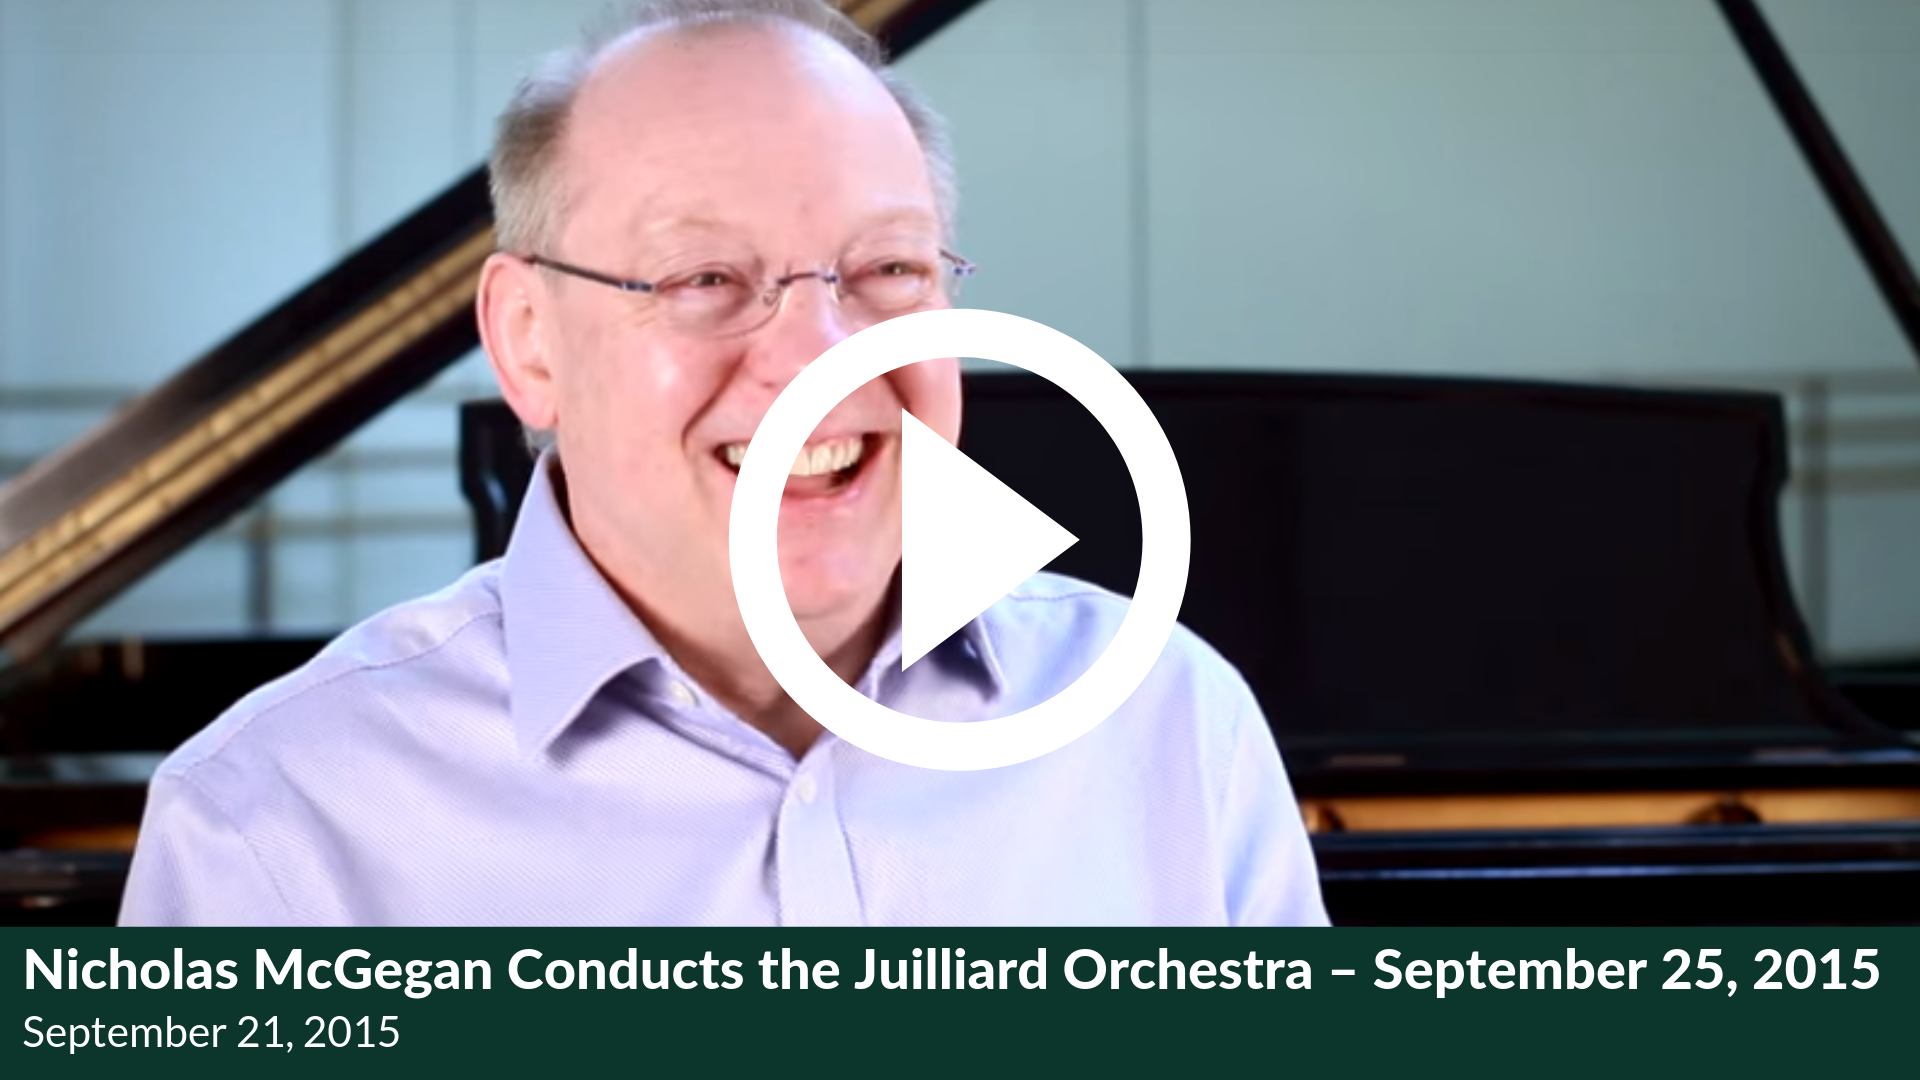 Nicholas McGegan Conducts the Juilliard Orchestra – September 25, 2015